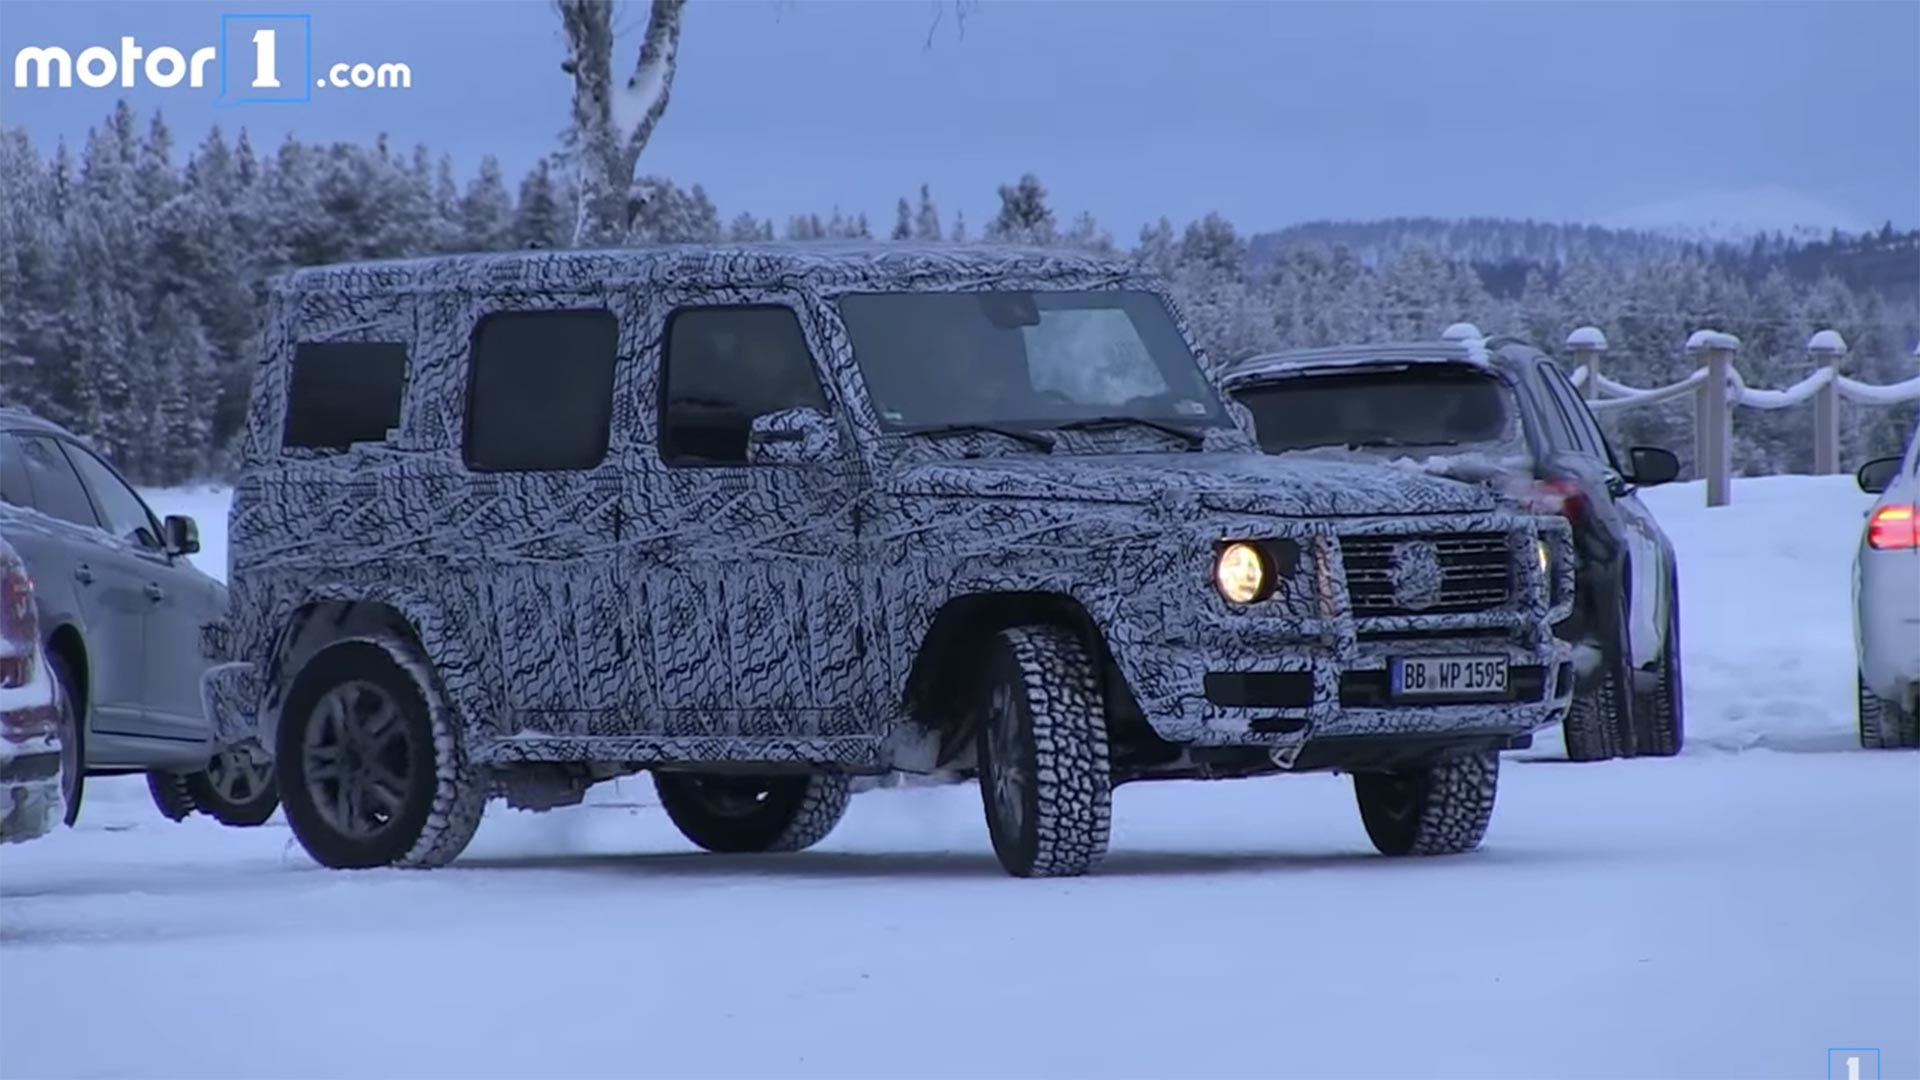 2018 Suzuki Jimny: Redesigned, Smarter, Boxier >> Mercedes Confirms New G Class Will Keep Its Boxy Shape